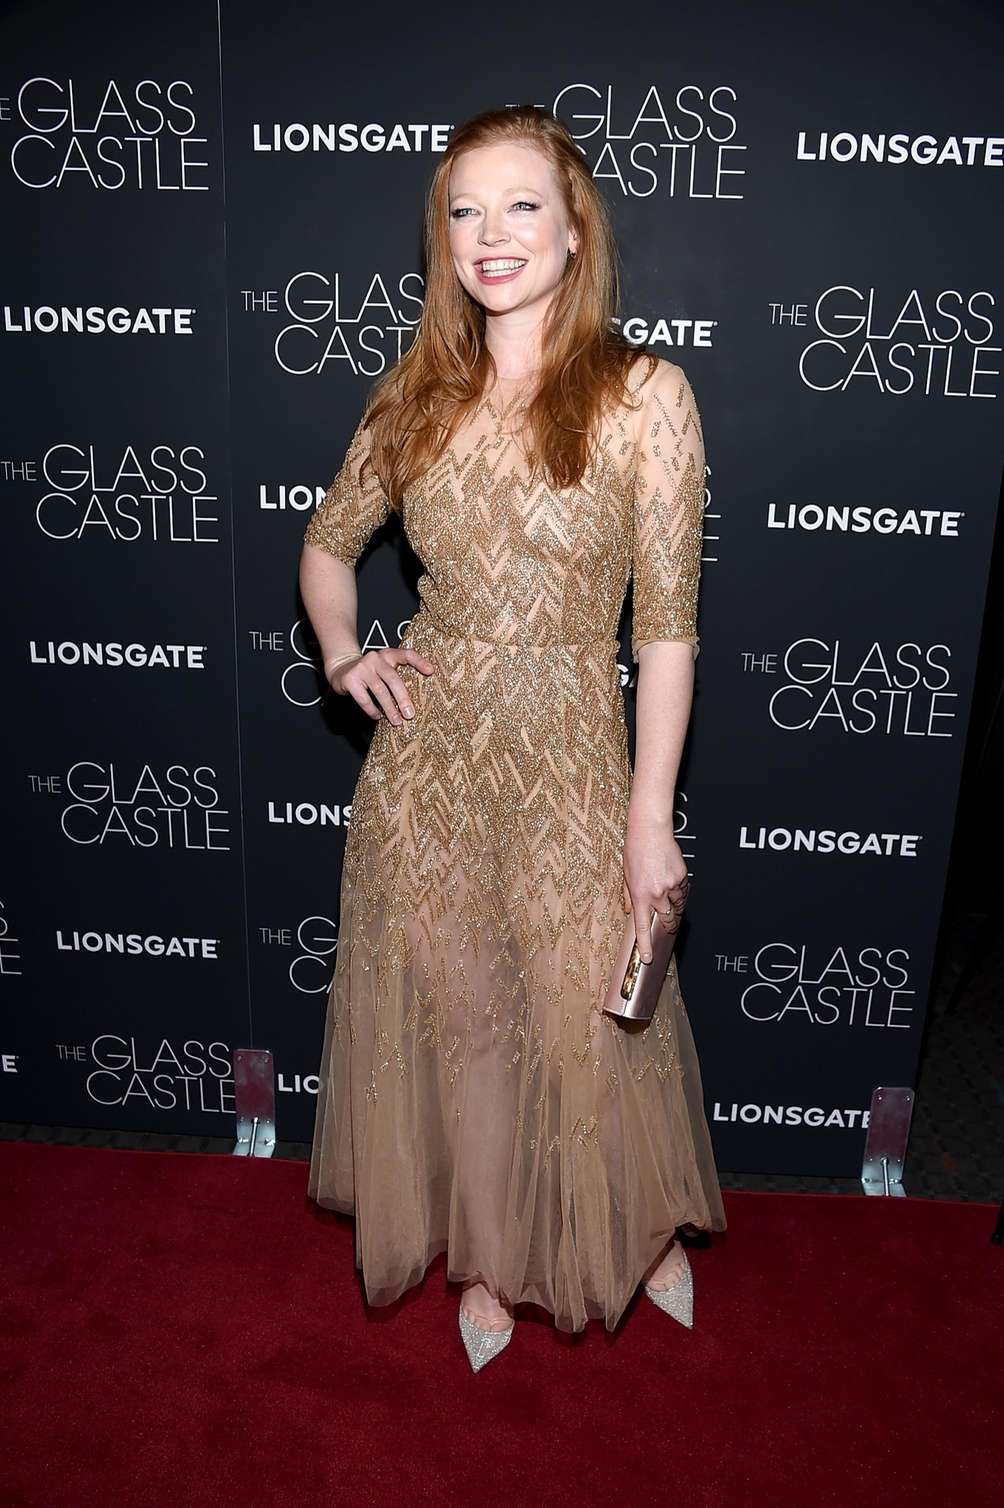 Sarah Snook at the New York City premiere